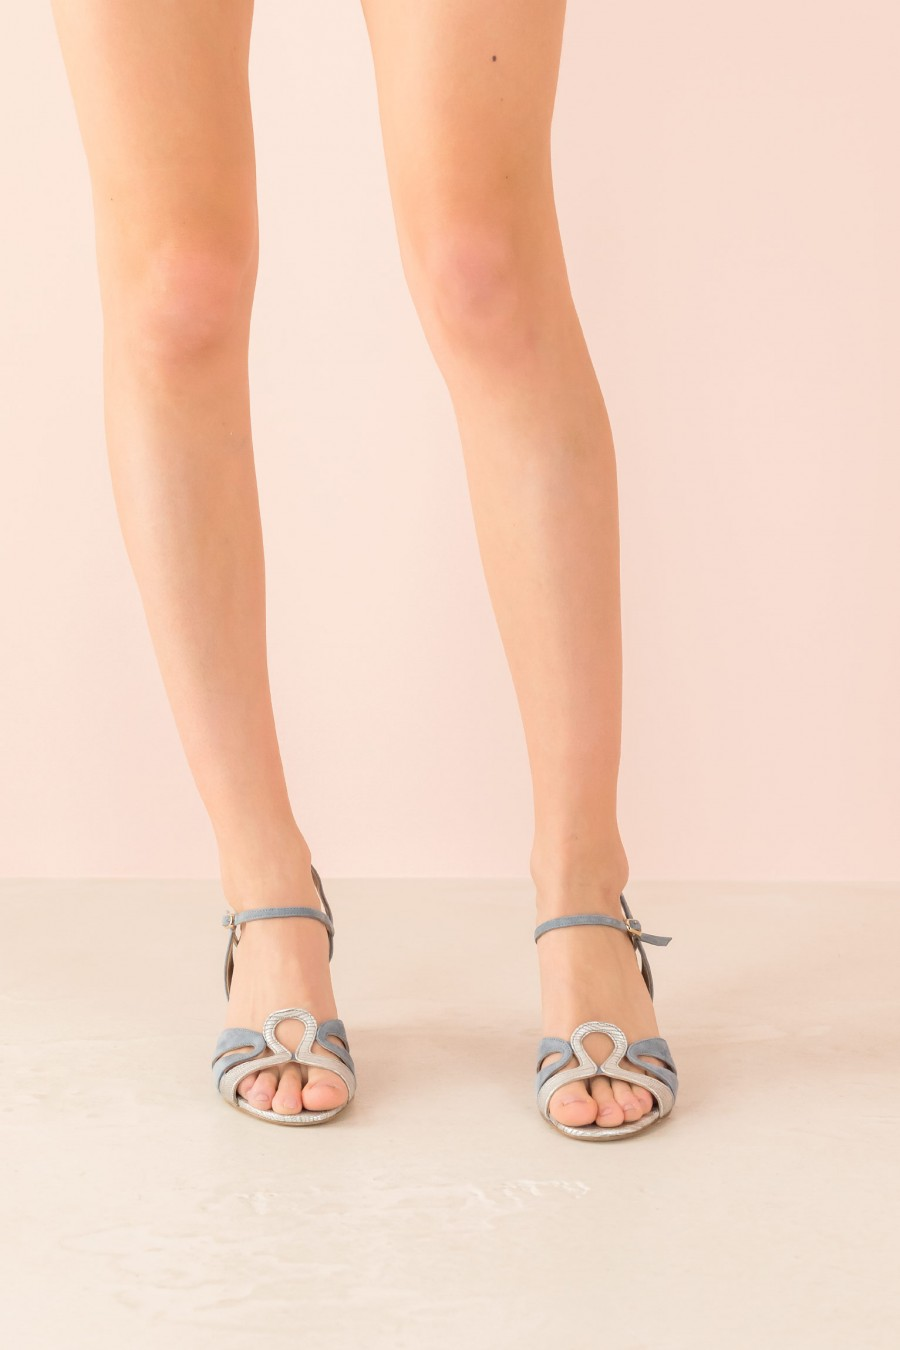 bicolored sandal with strap